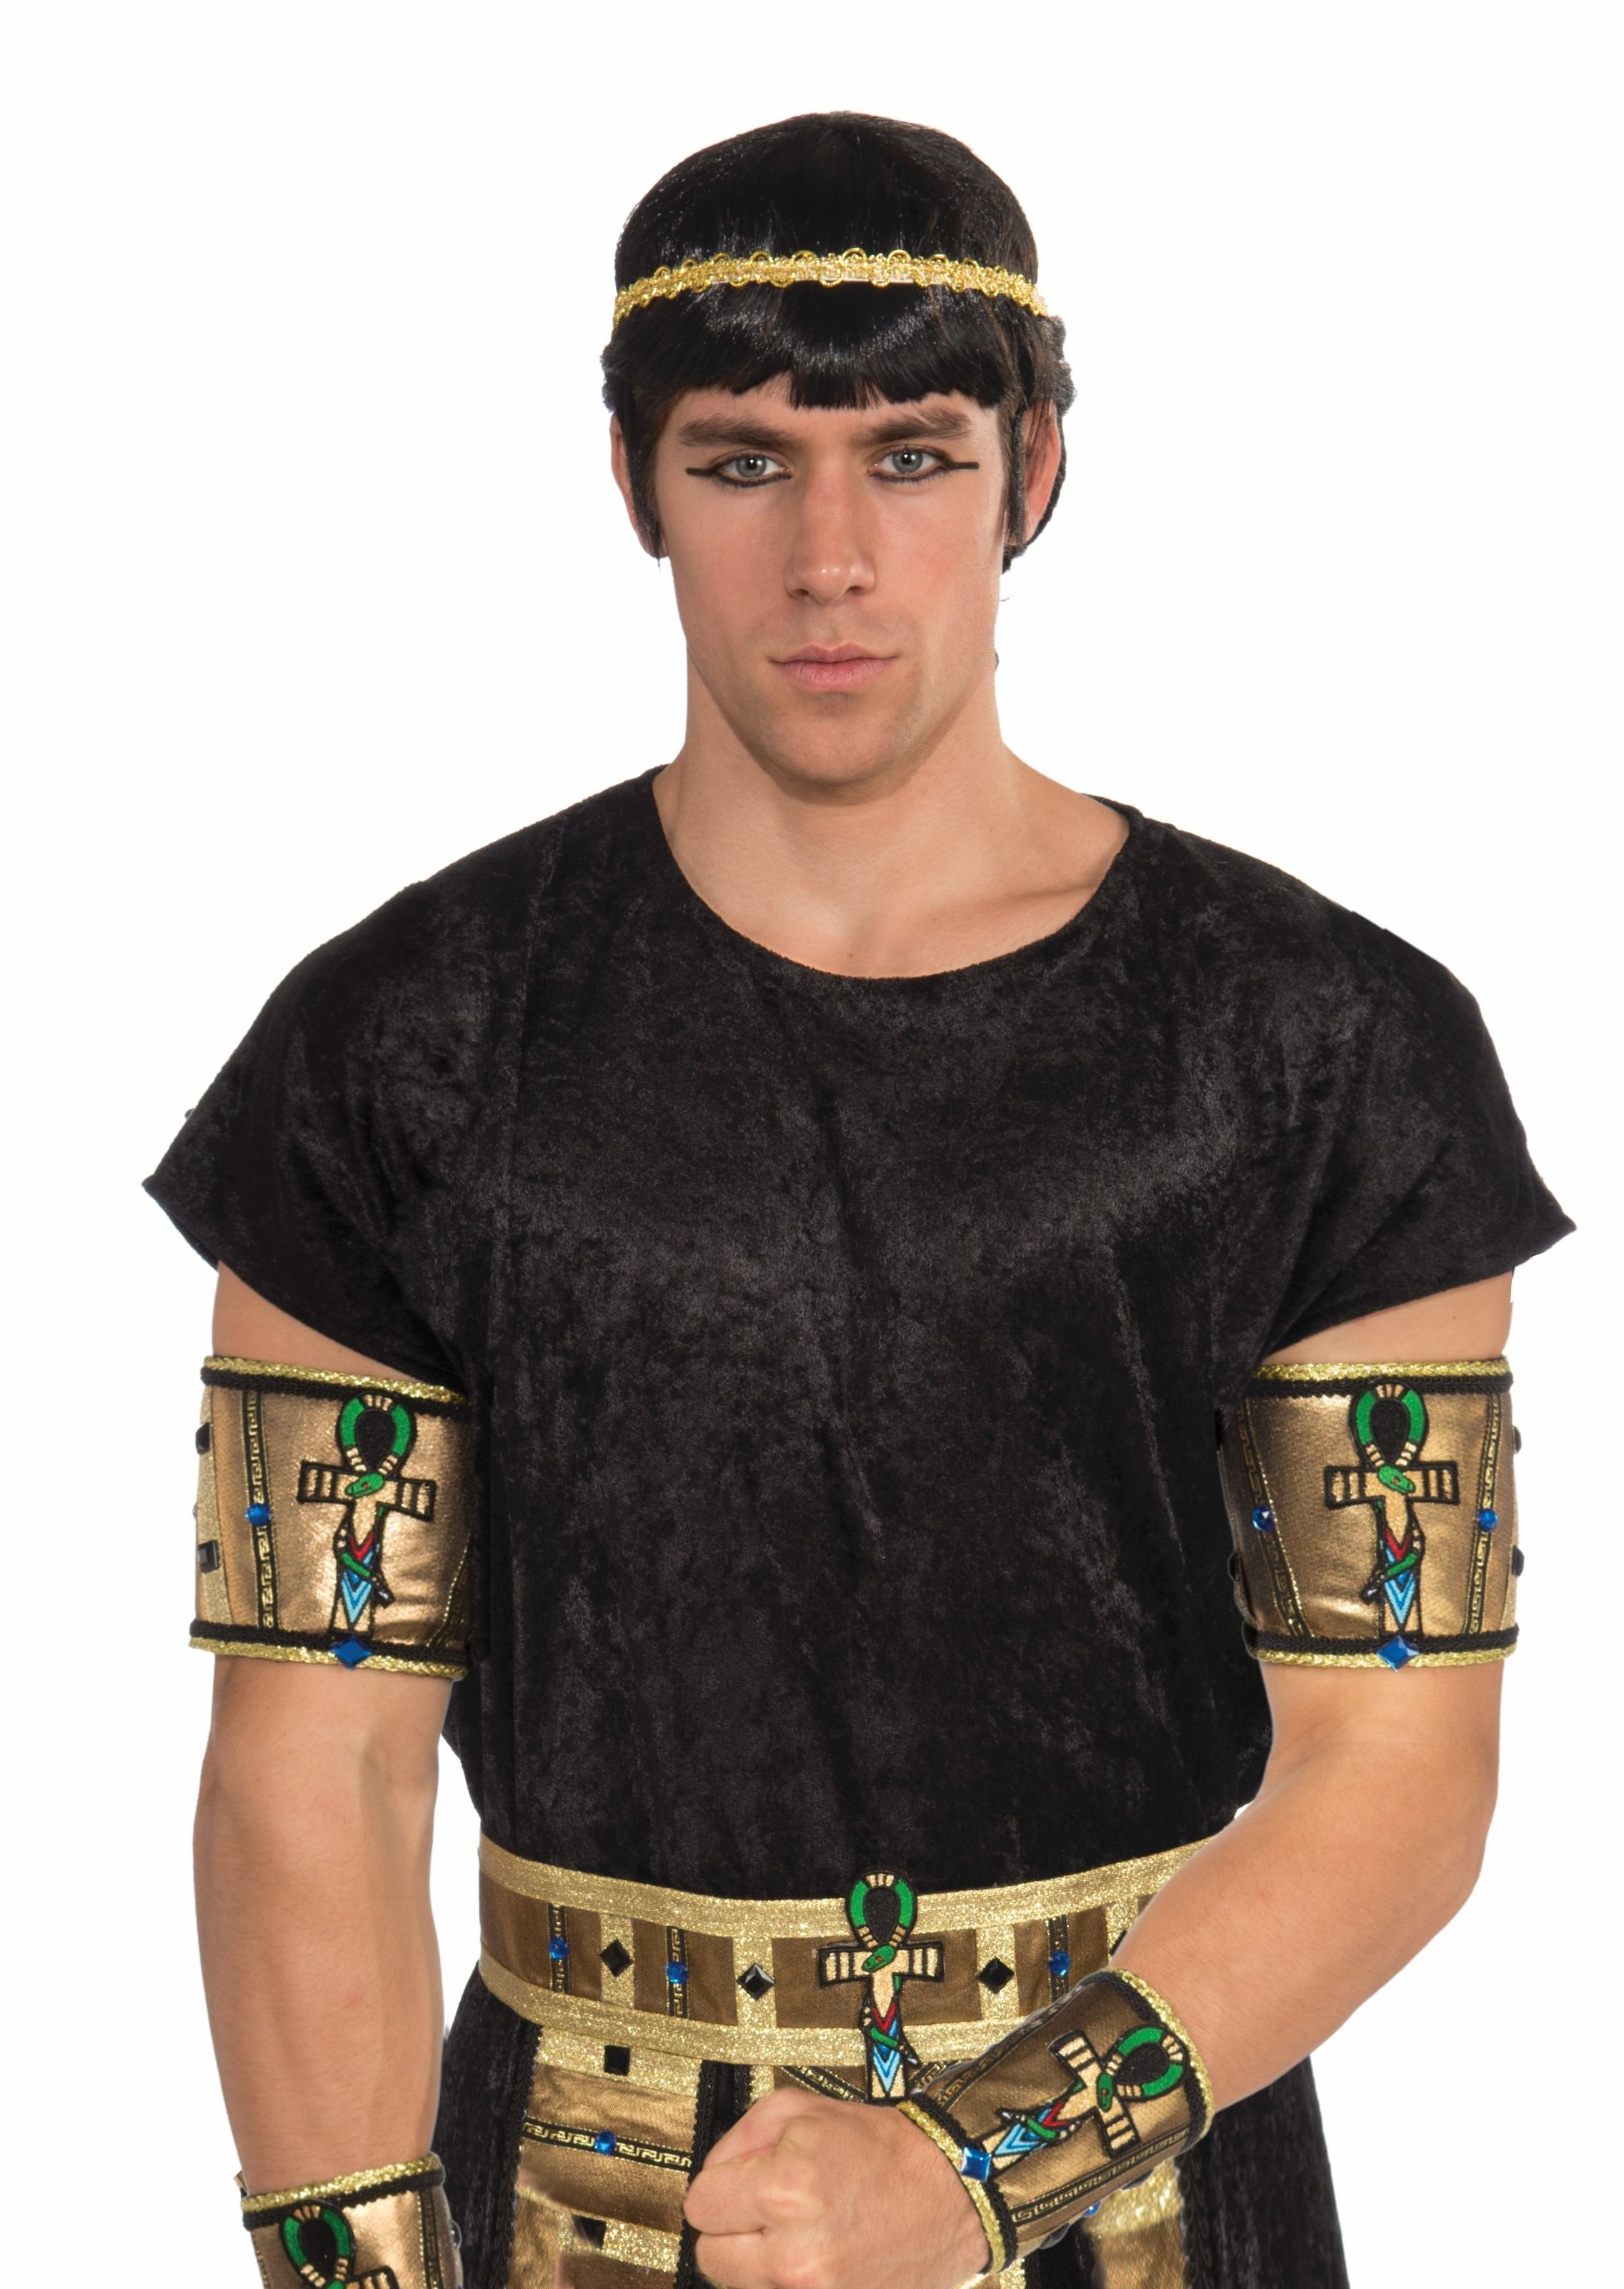 Details about Deluxe Pair Male Egyptian Costume Armbands